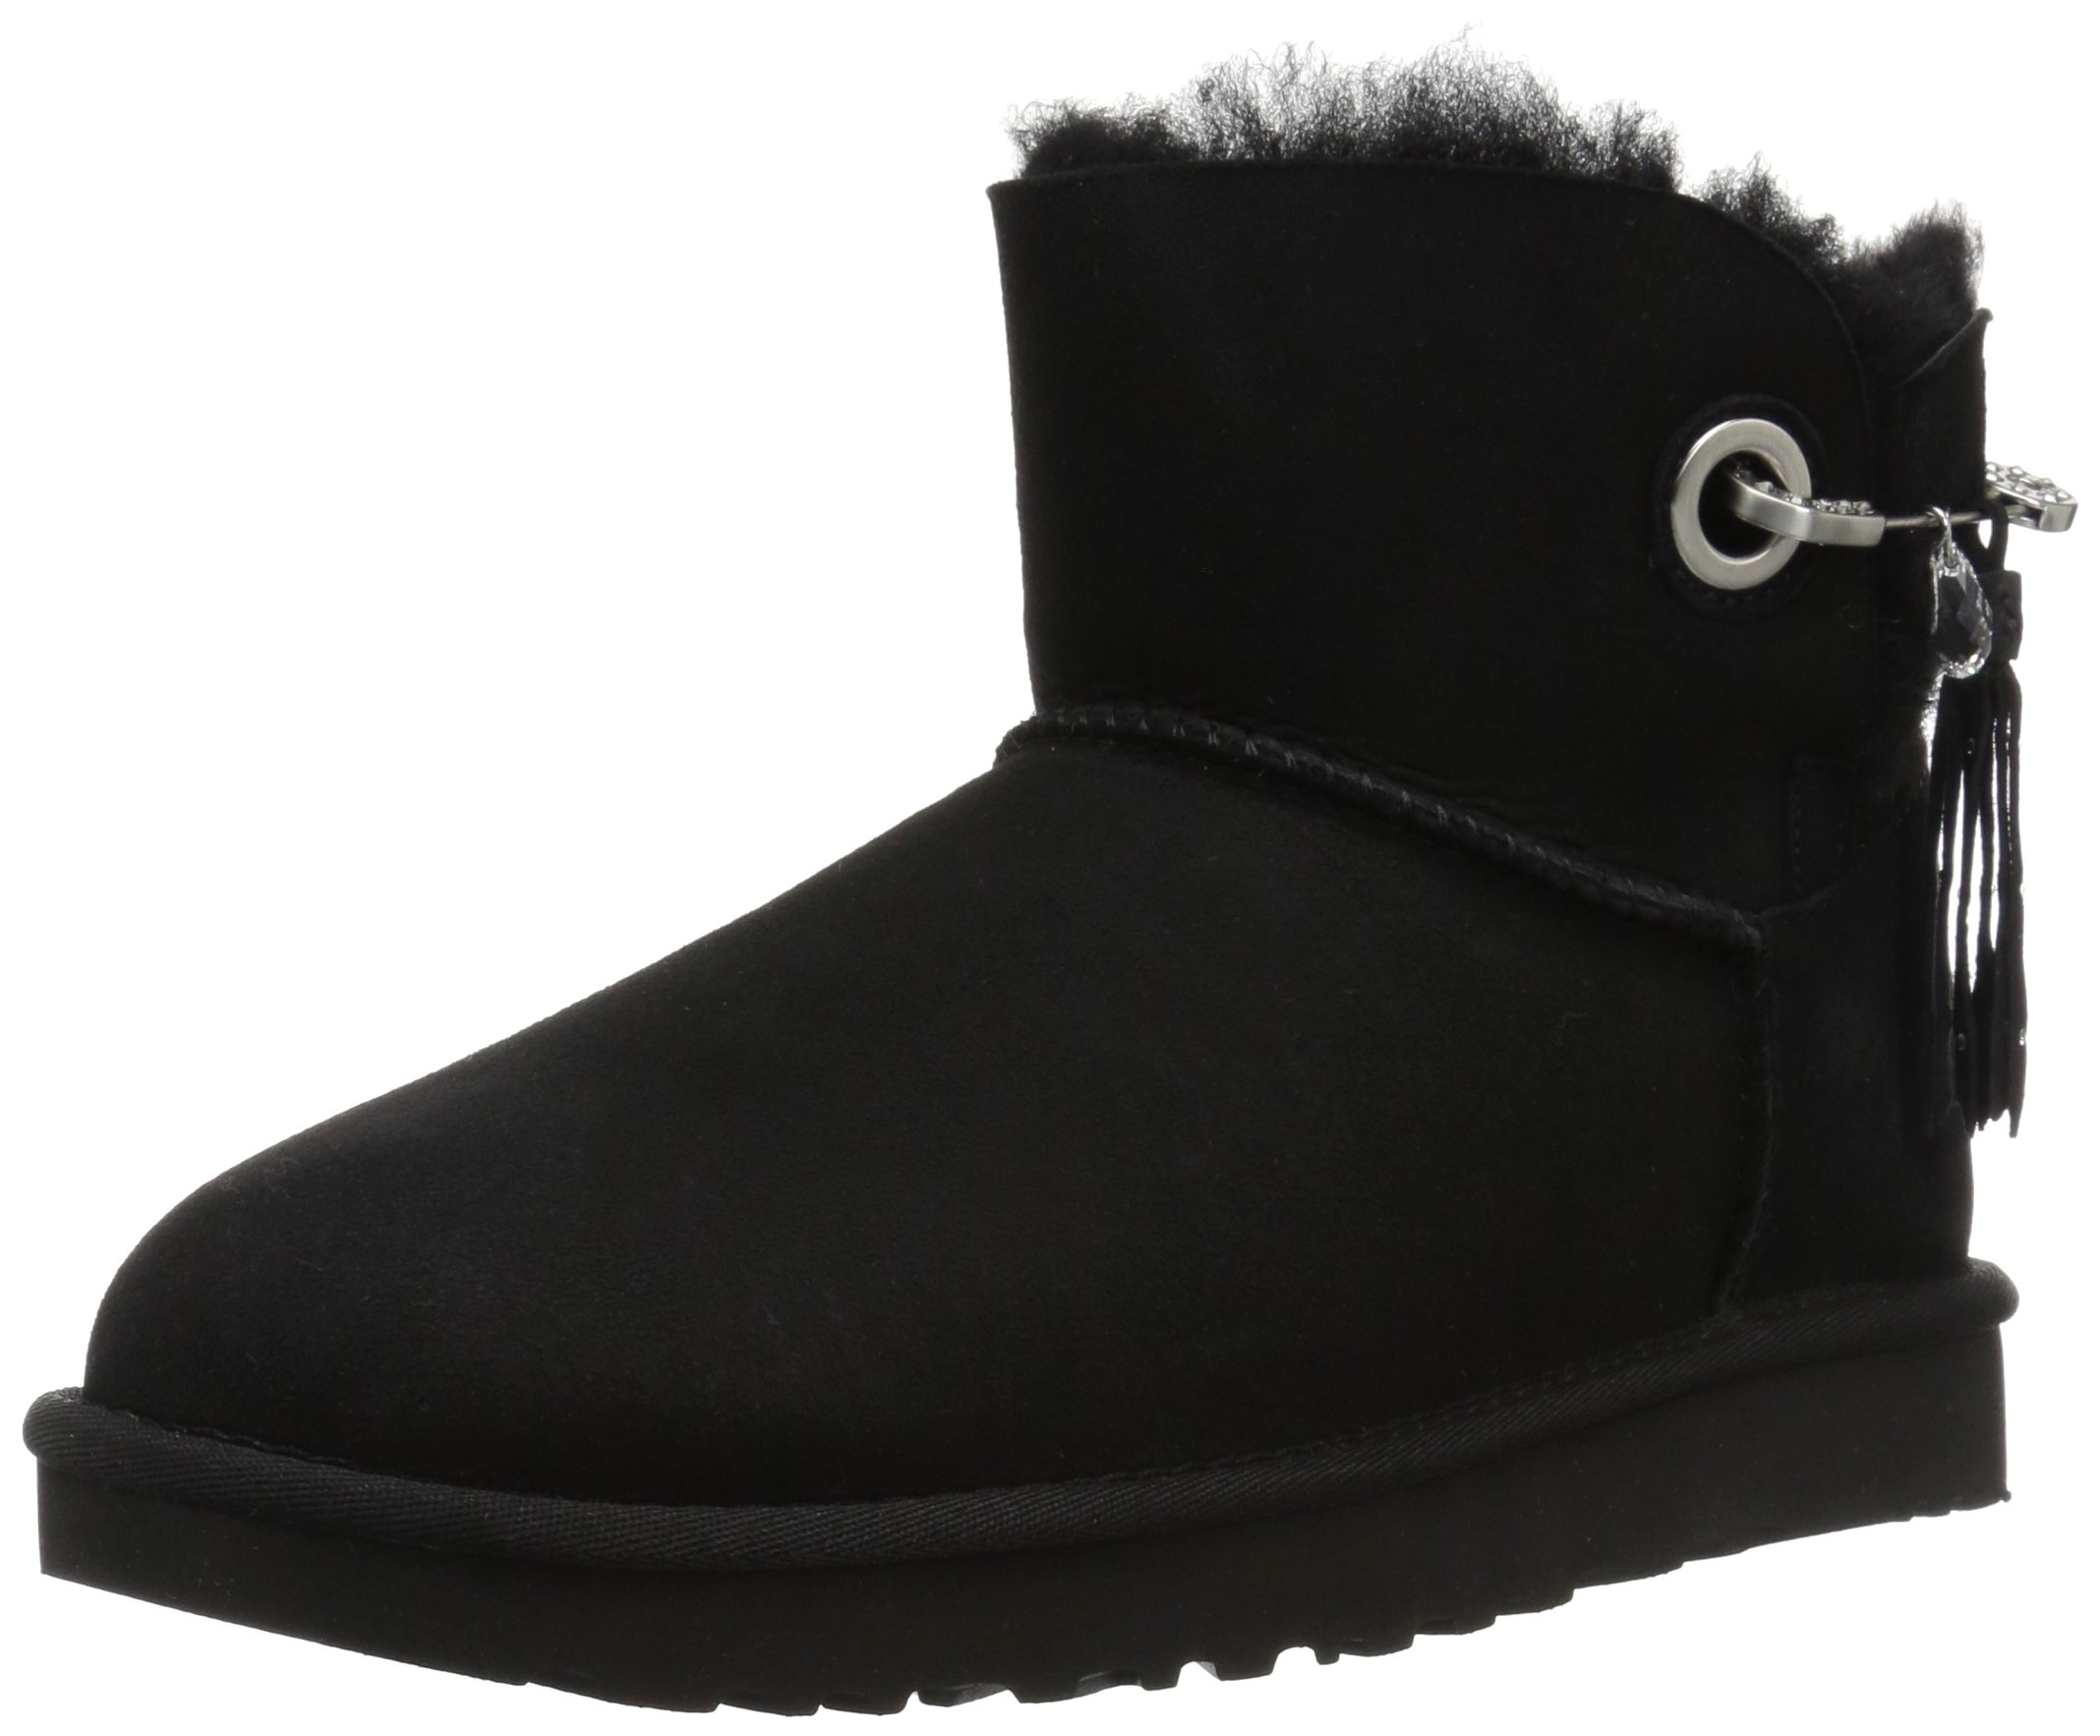 UGG Women's Josey Winter Boot, Black, 9 M US